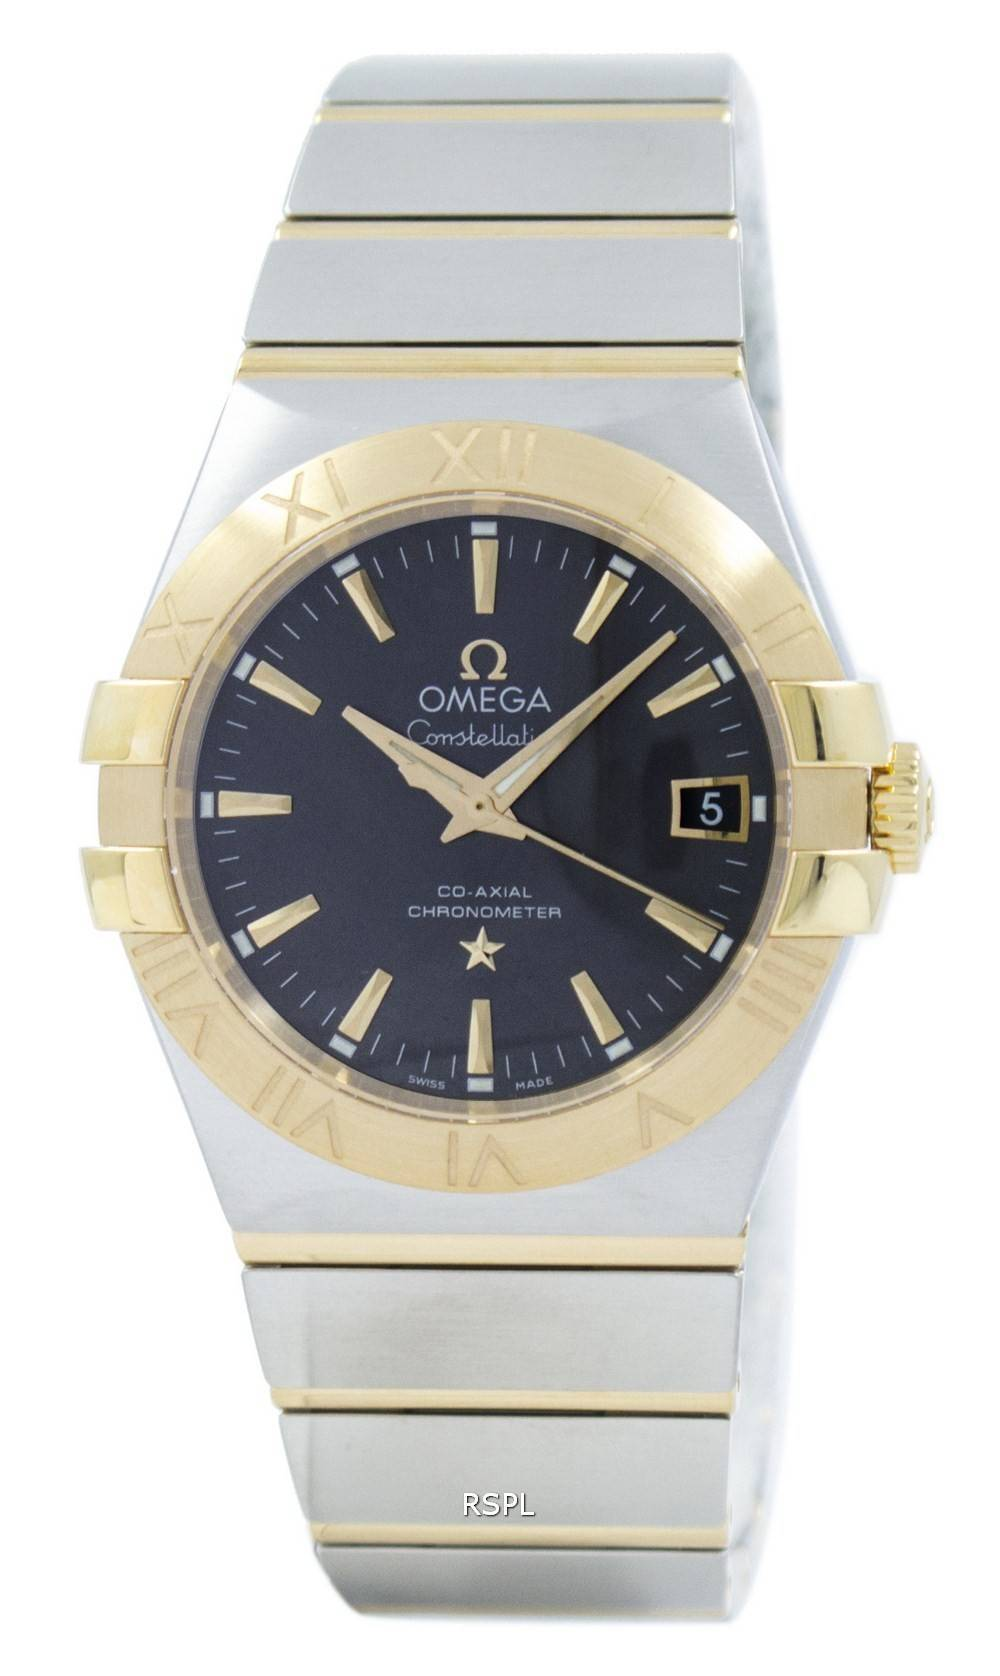 22e14bec1ef Omega Constellation Co-Axial kronometer 123.20.35.20.06.001 Herreur ...